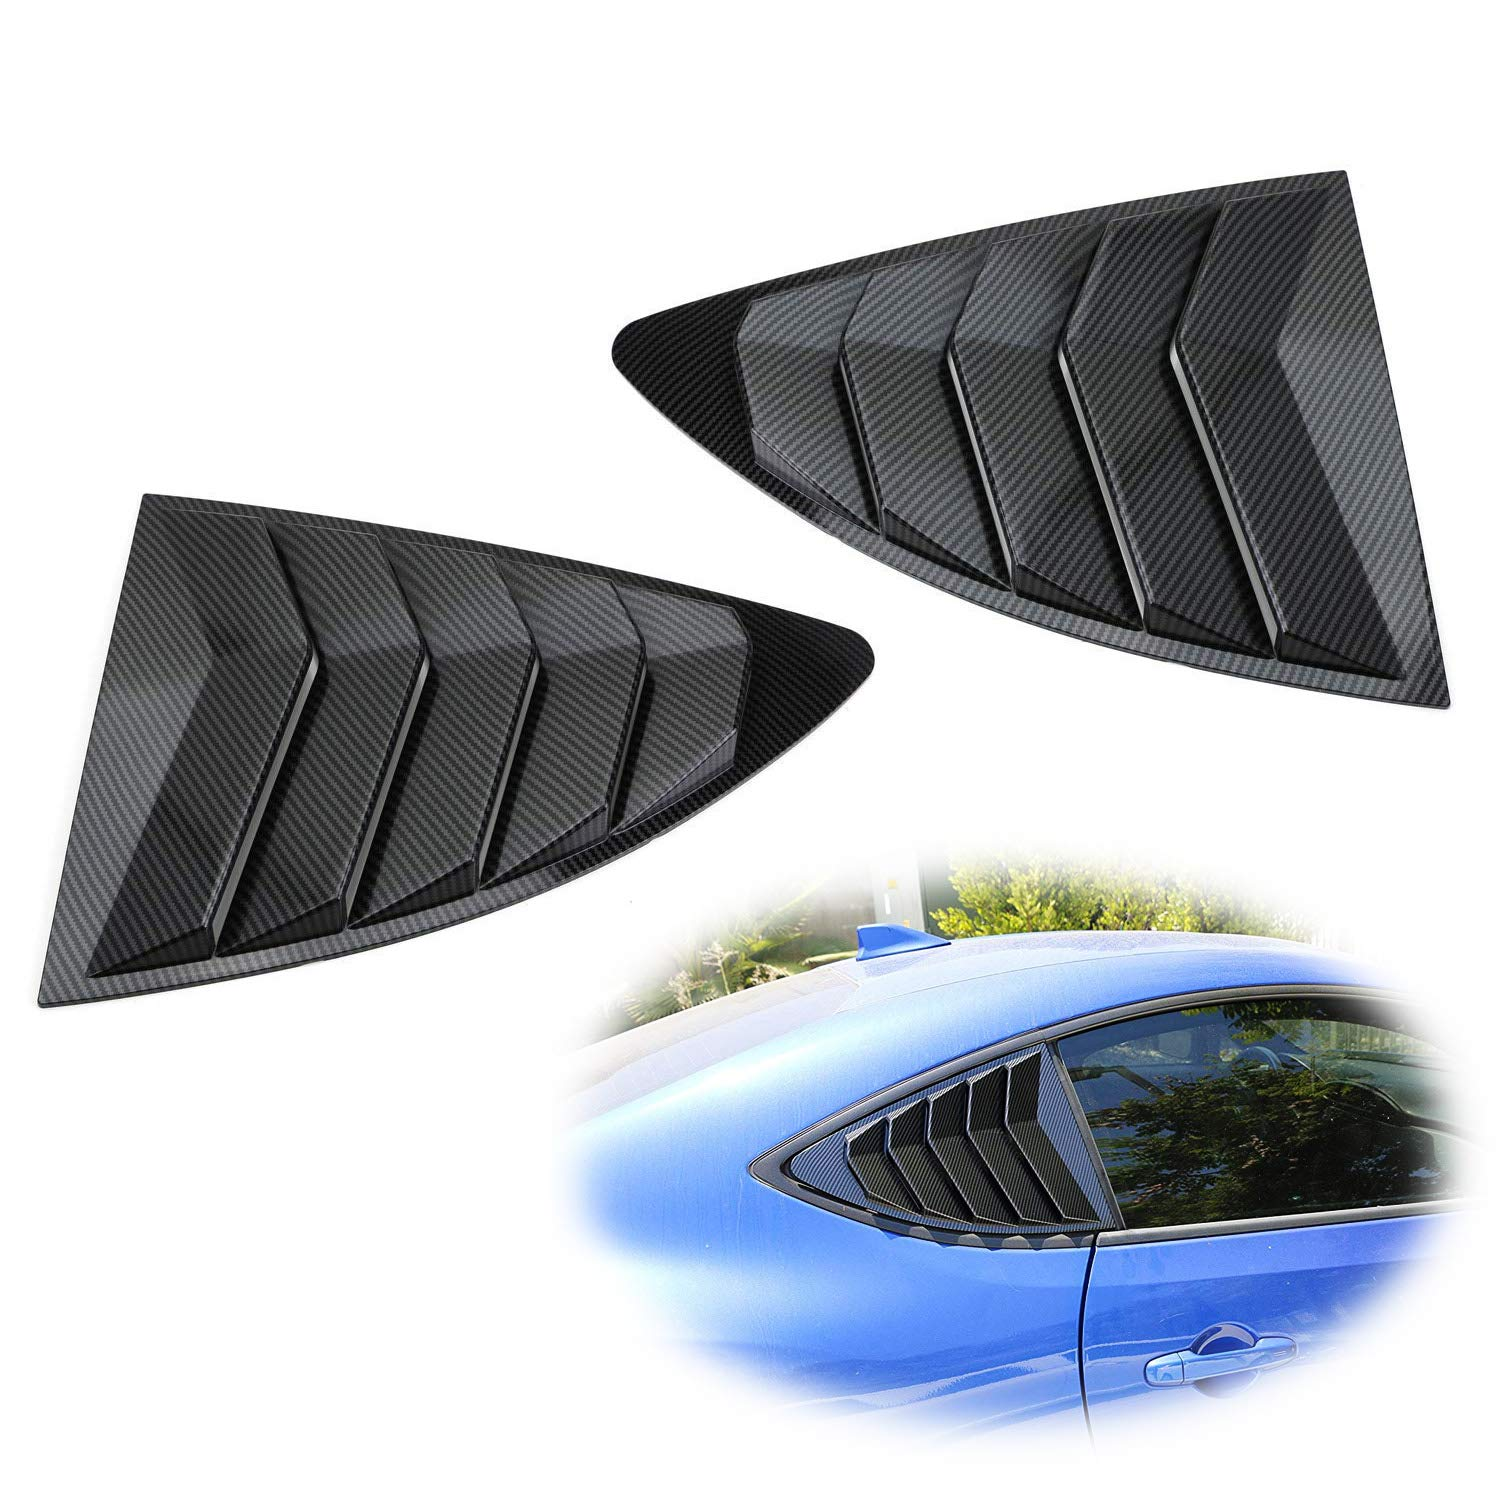 iJDMTOY Left/Right Gloss'Carbon Fiber' Finish Racing Style Rear Side Window Scoop Air Vent/Louver Shades For 2013-up Scion FR-S Subaru BRZ and Toyota 86 iJDMTOY Auto Accessories Air Vent Scoop Louver Assembly Assy Kit